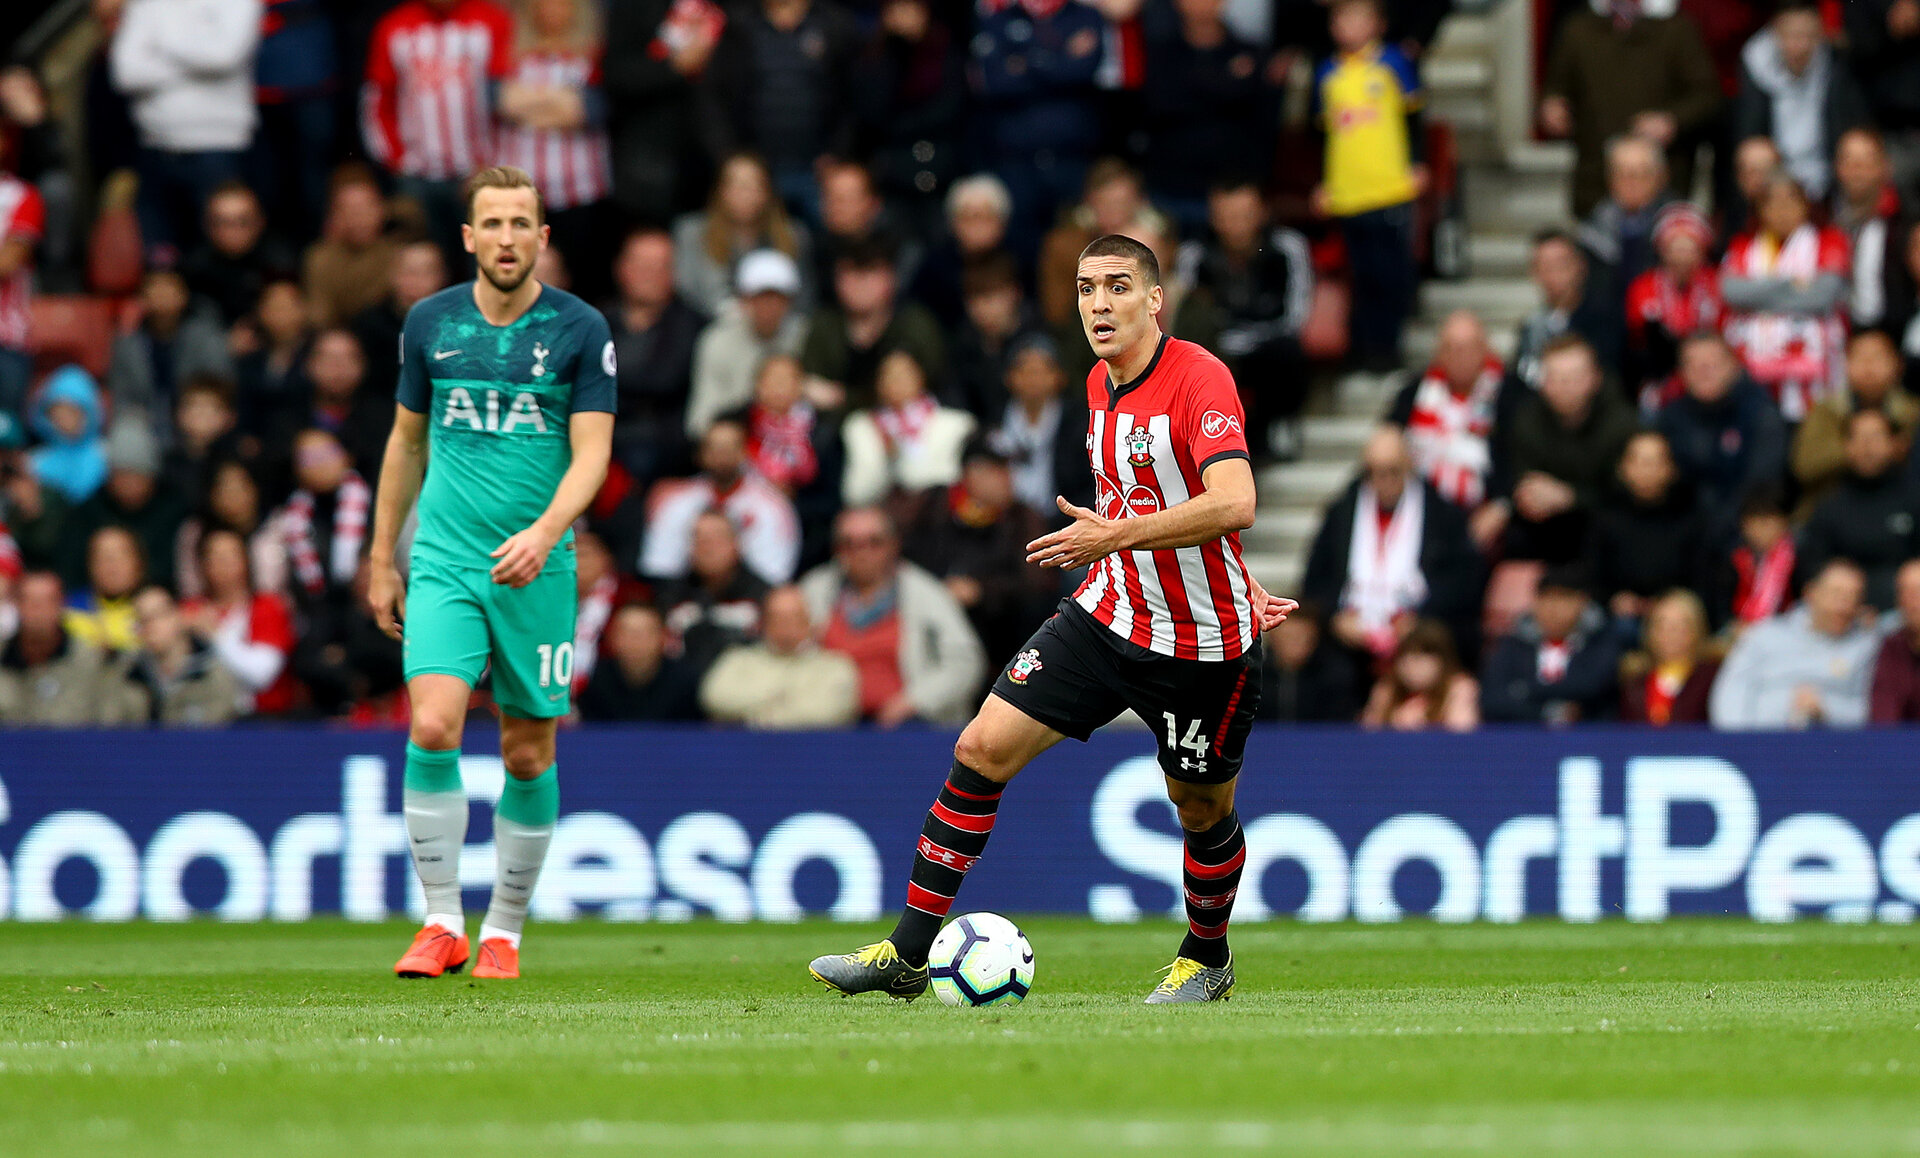 SOUTHAMPTON, ENGLAND - MARCH 09: Oriol Romeu of Southampton during the Premier League match between Southampton FC and Tottenham Hotspur at St Mary's Stadium on March 09, 2019 in Southampton, United Kingdom. (Photo by Matt Watson/Southampton FC via Getty Images)